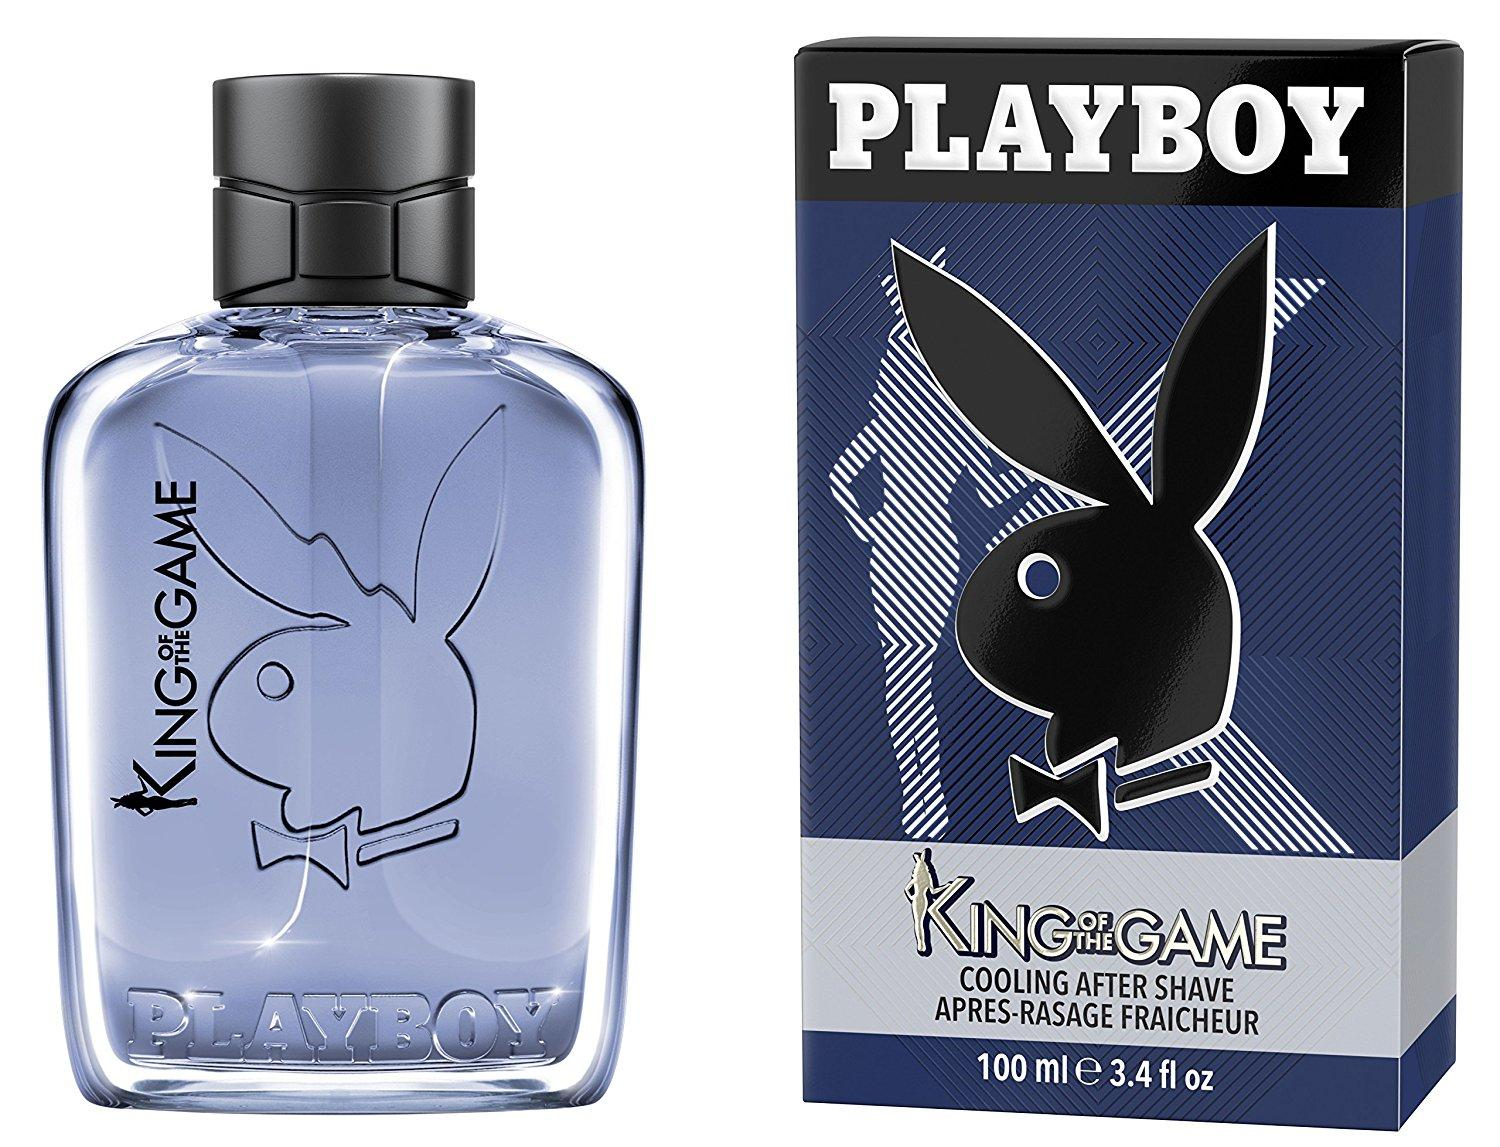 Playboy King of the Game (ASH,Men,100ml) T-MLX21318